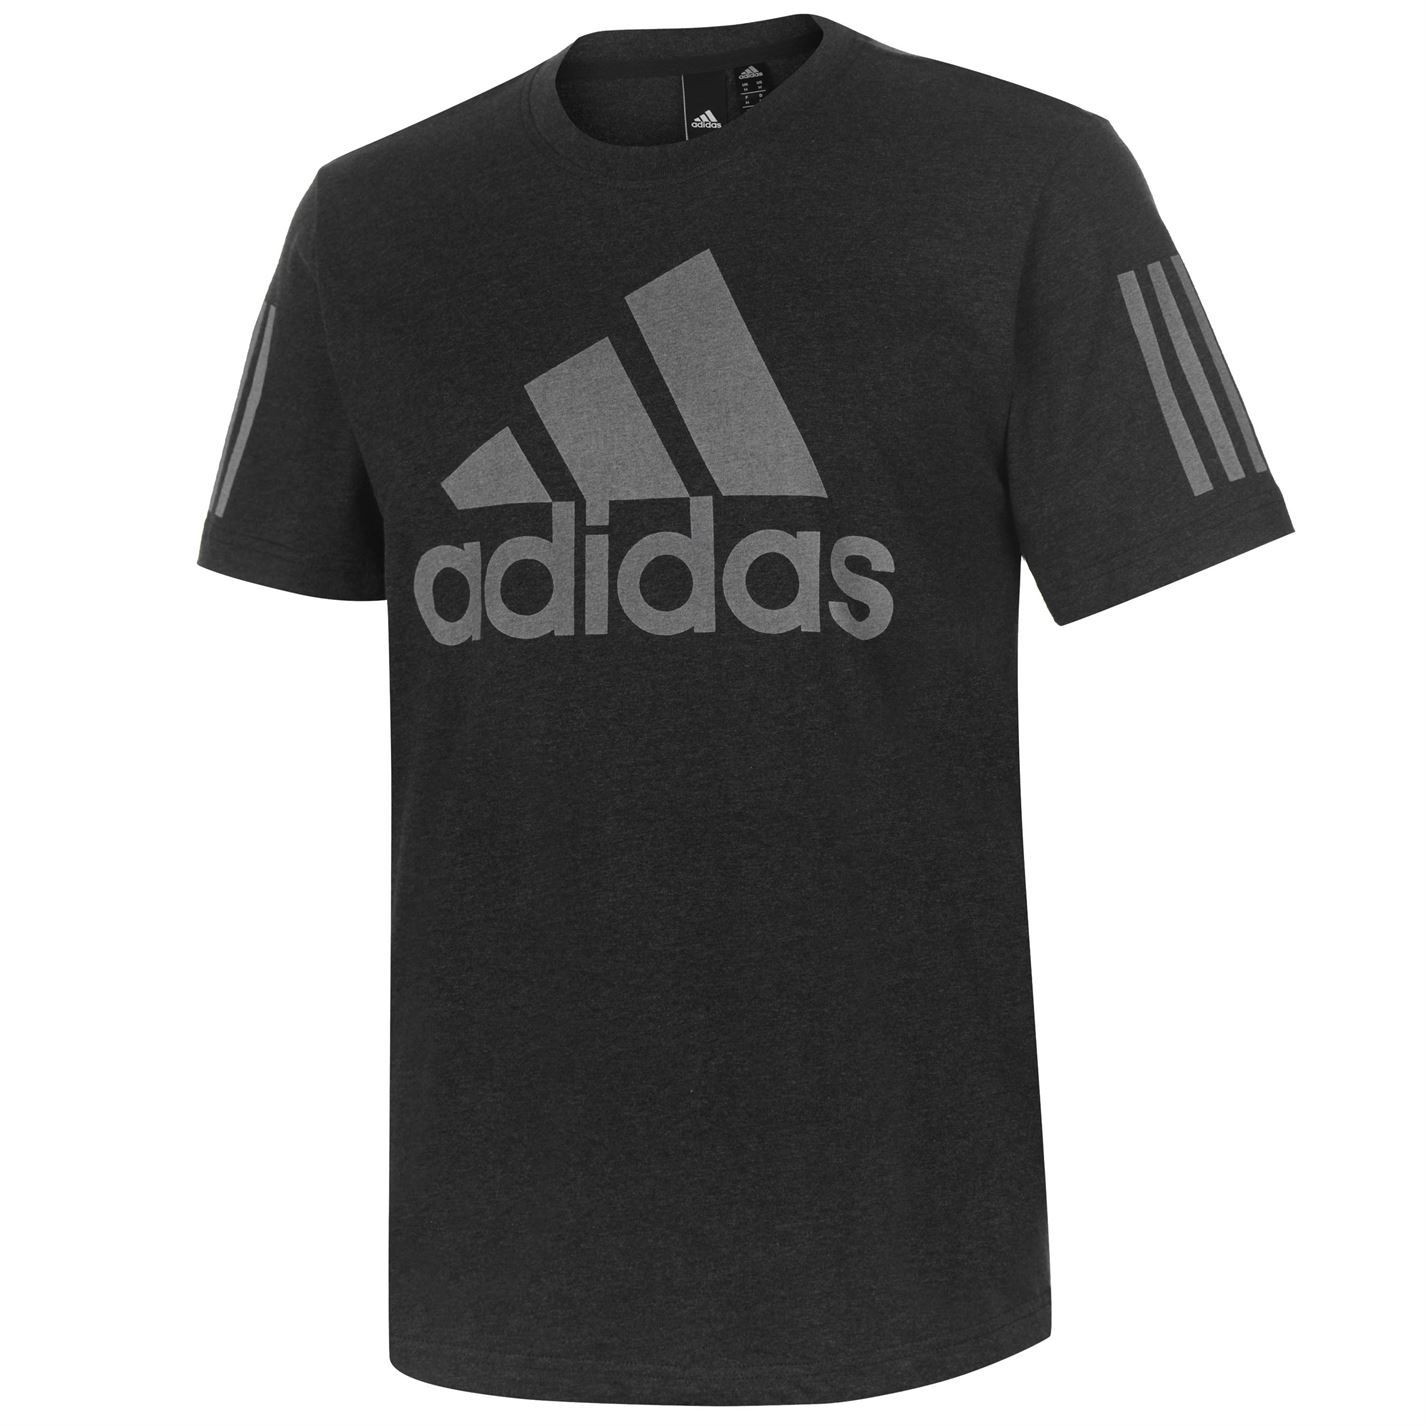 827ea228c177 adidas Mens SID Logo T Shirt Short Sleeve Performance Tee Top Crew ...